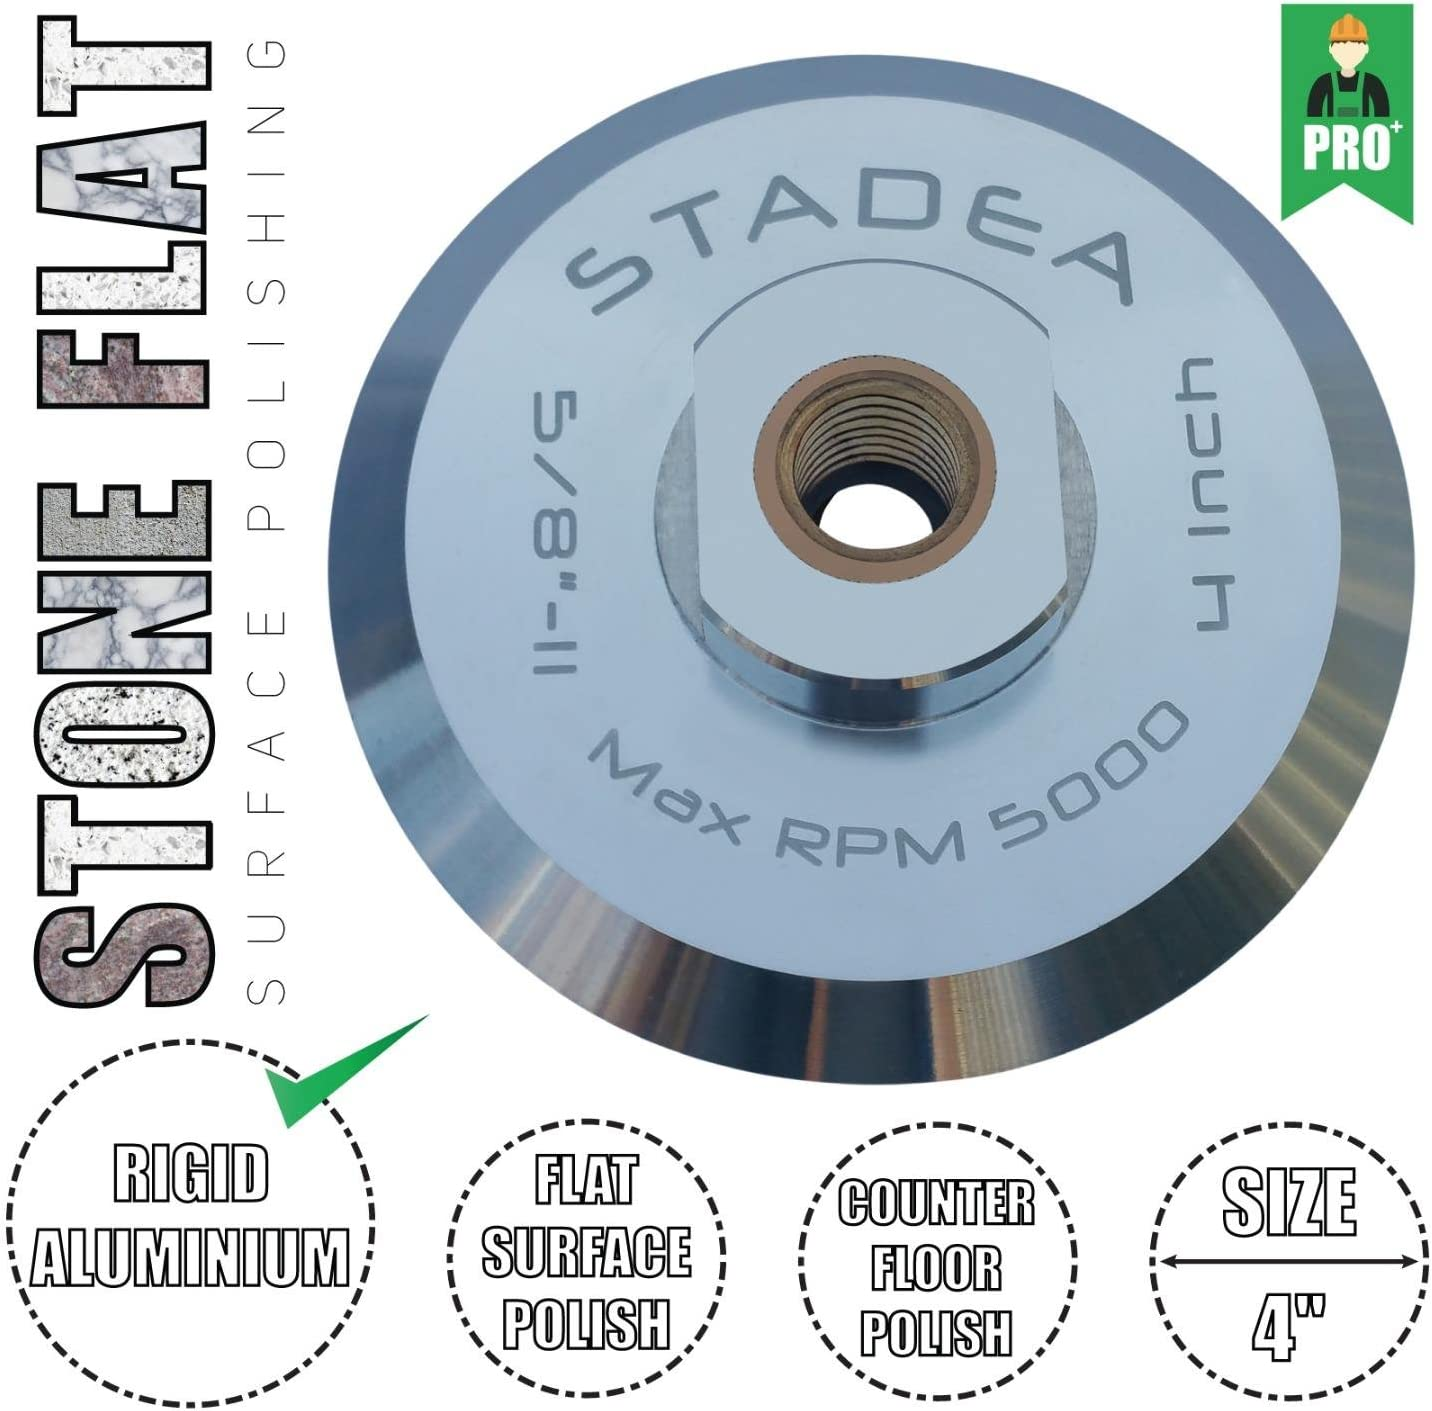 Stadea ABP102Q 4 Inch Hook and Loop Backing Pad With Rigid Aluminium Backing 5//8 11 Brass Arbor